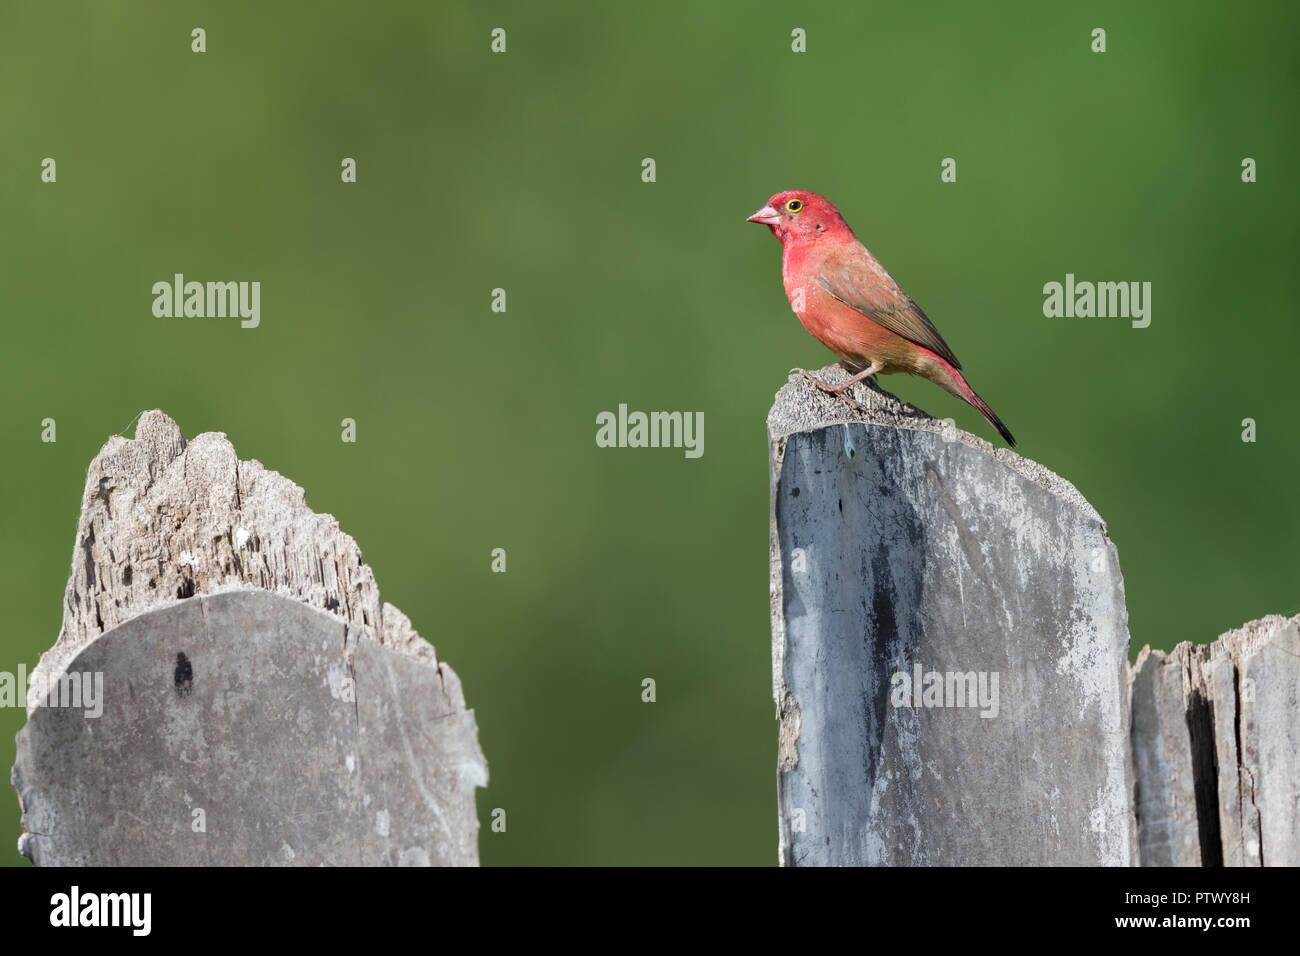 Red-billed firefinch Lagonosticta senegala, adult male, perched on post, Kartong Wetland, Gambia, November Stock Photo